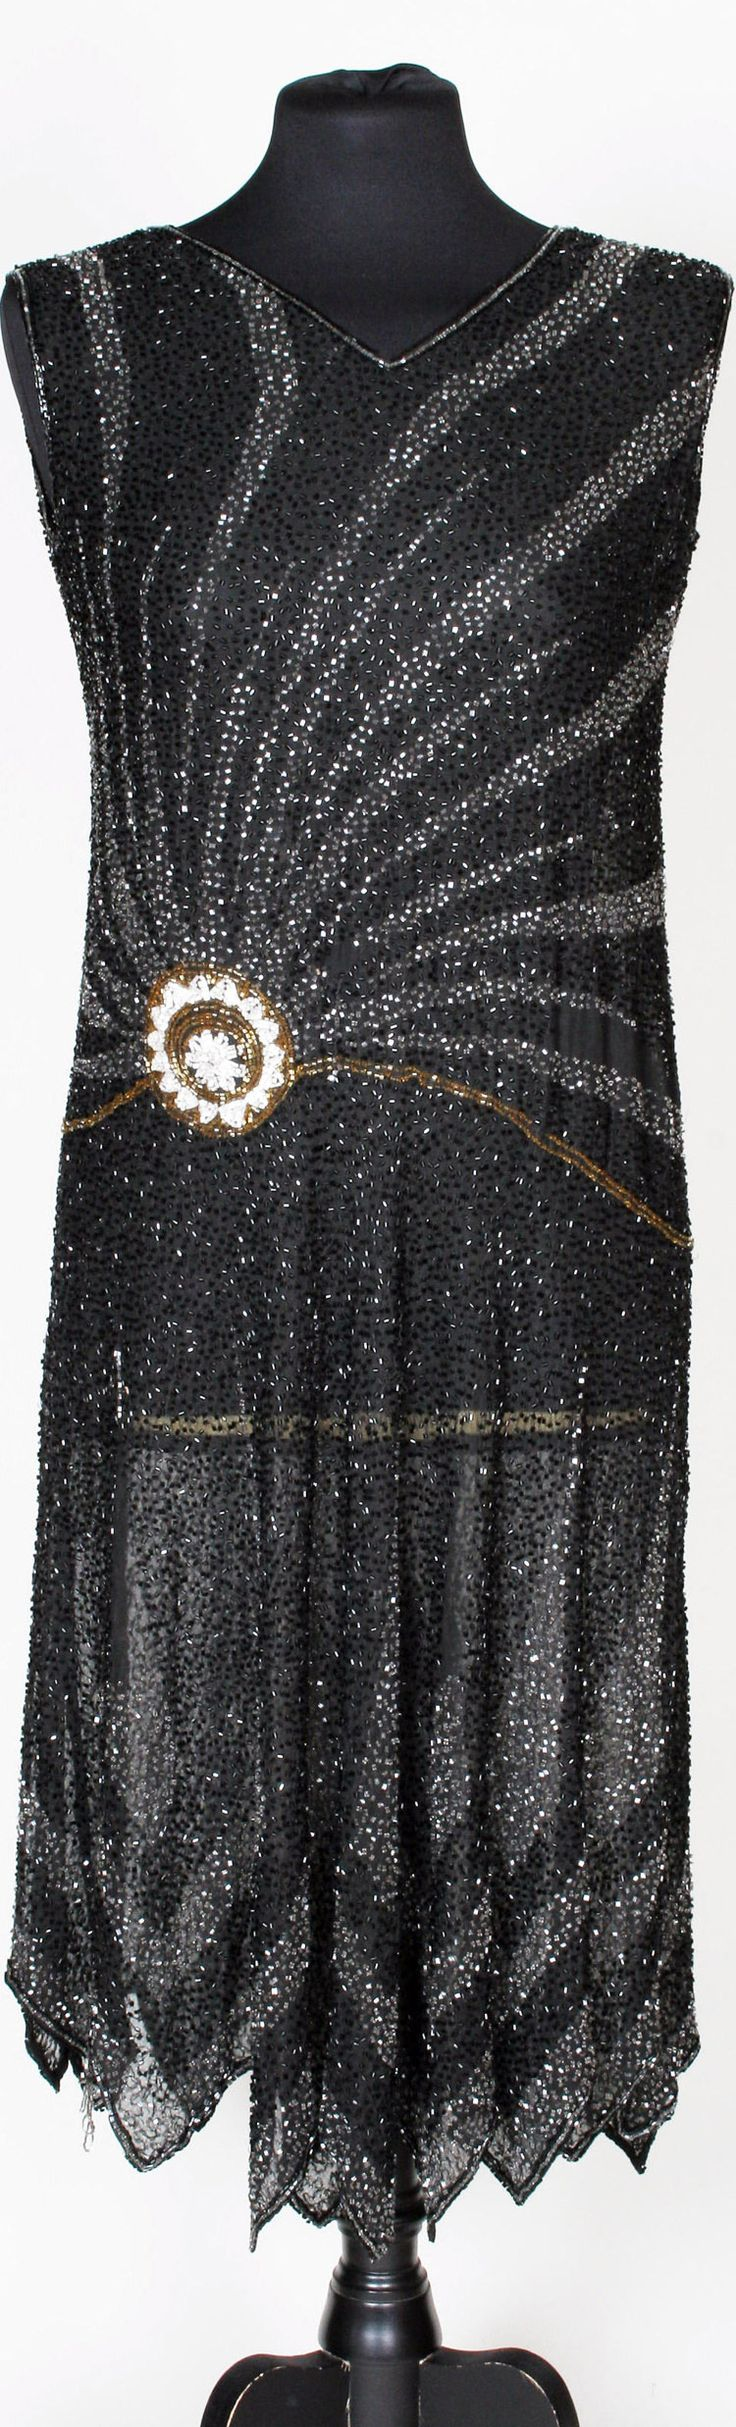 A 1920s black beaded flapper dress with a sun ray design stemming from the waist with a central circular decoration of gold and white beads. Bonhams